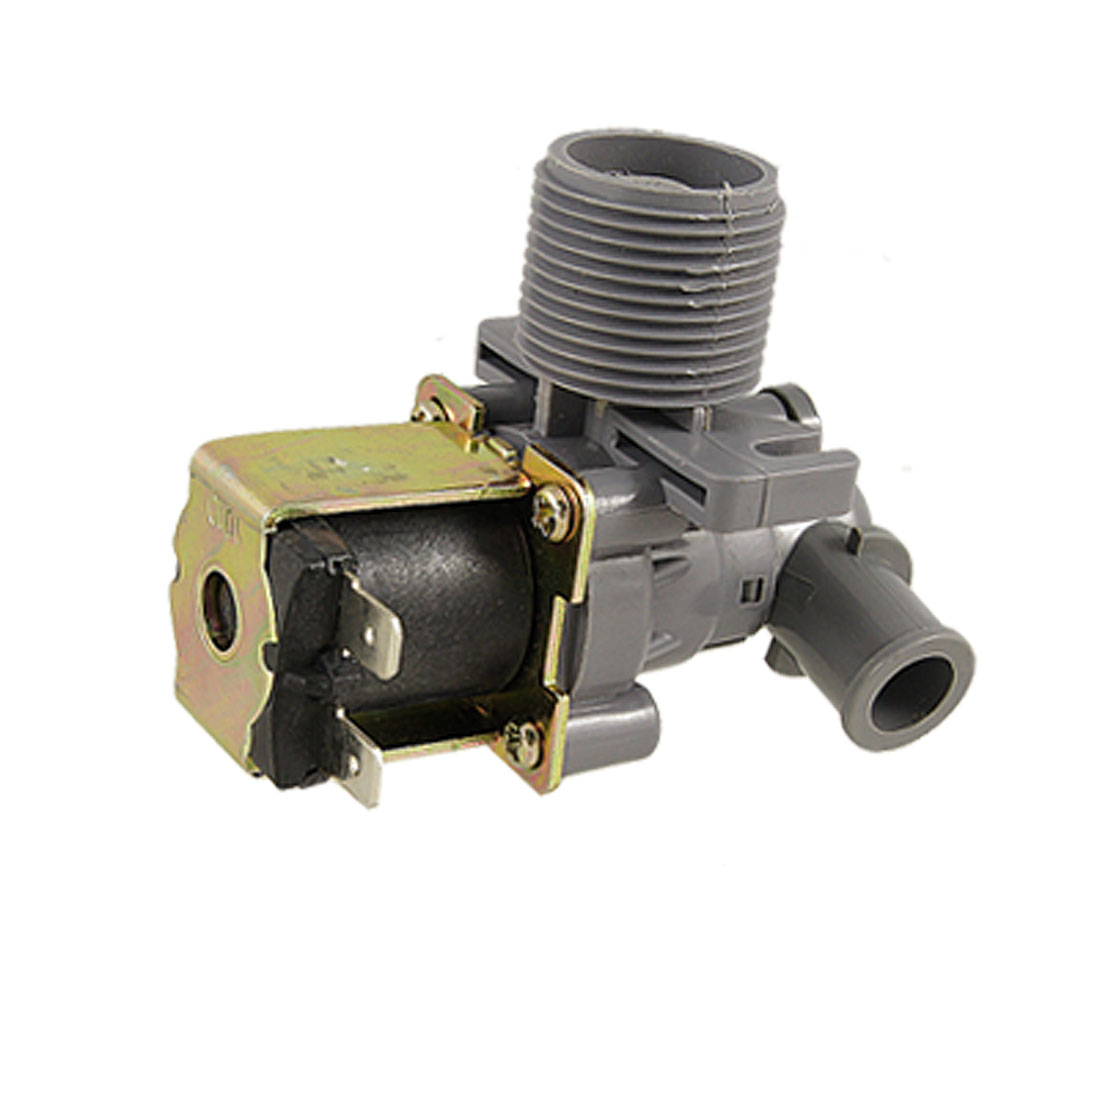 Dishwasher Washing Machine Water Inlet Electromagnetic Valve AC 220V